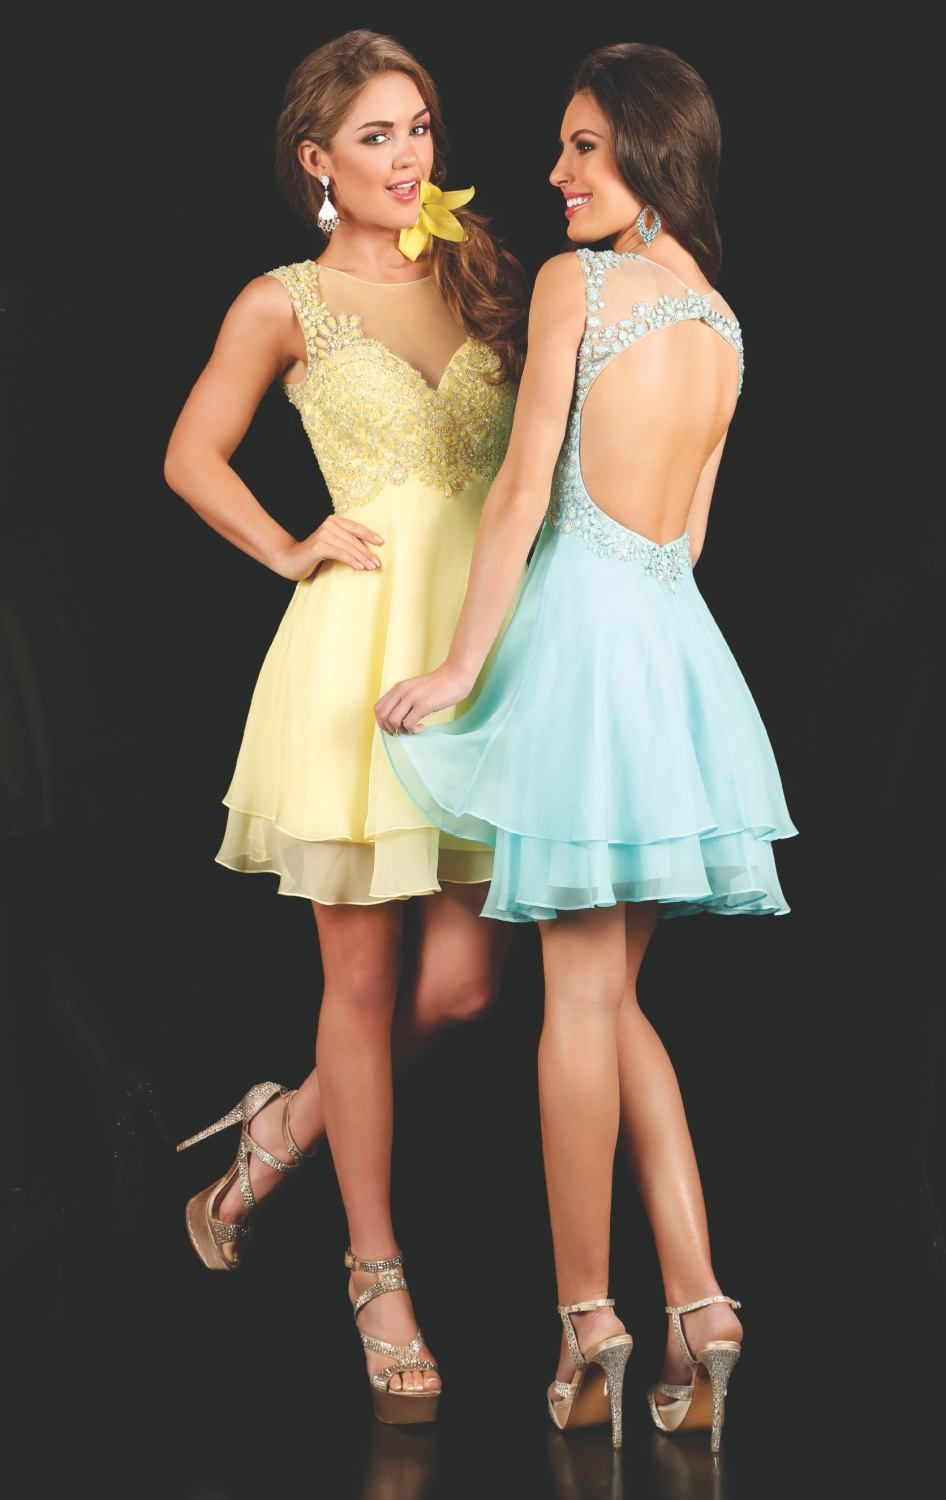 2016 New Homecoming Dresses Short Prom Party Graduation Gowns With A Line Sheer Neck  Backless Beads Yellow Mint Sweet 16 Beads